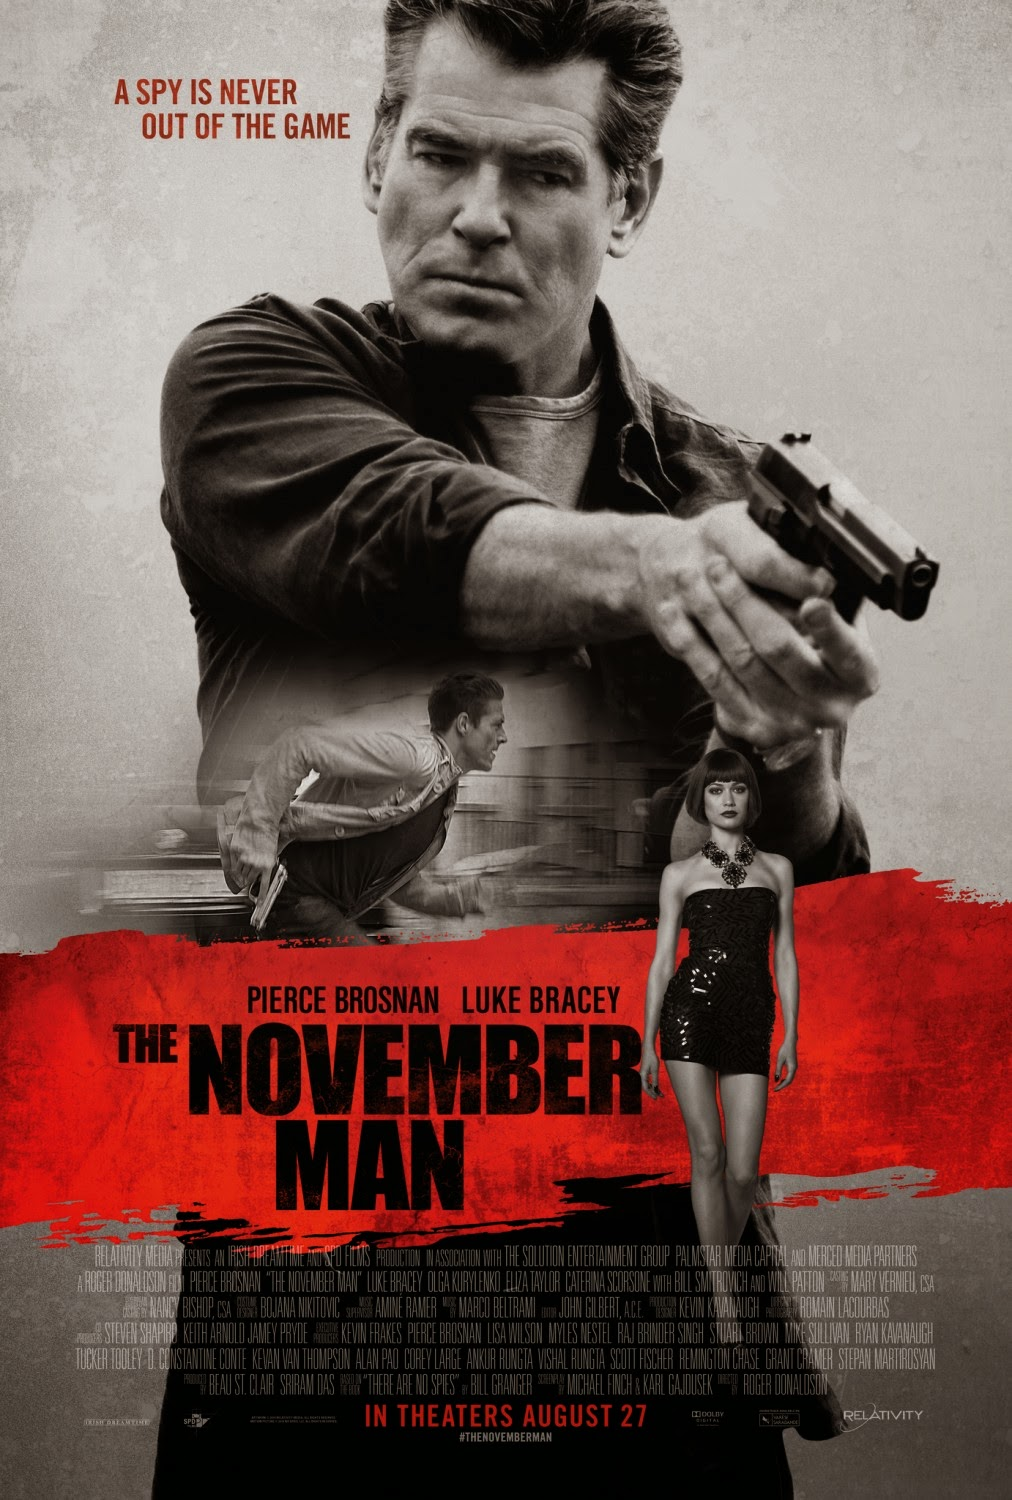 film november man 2014 wrlov.blogspot.com